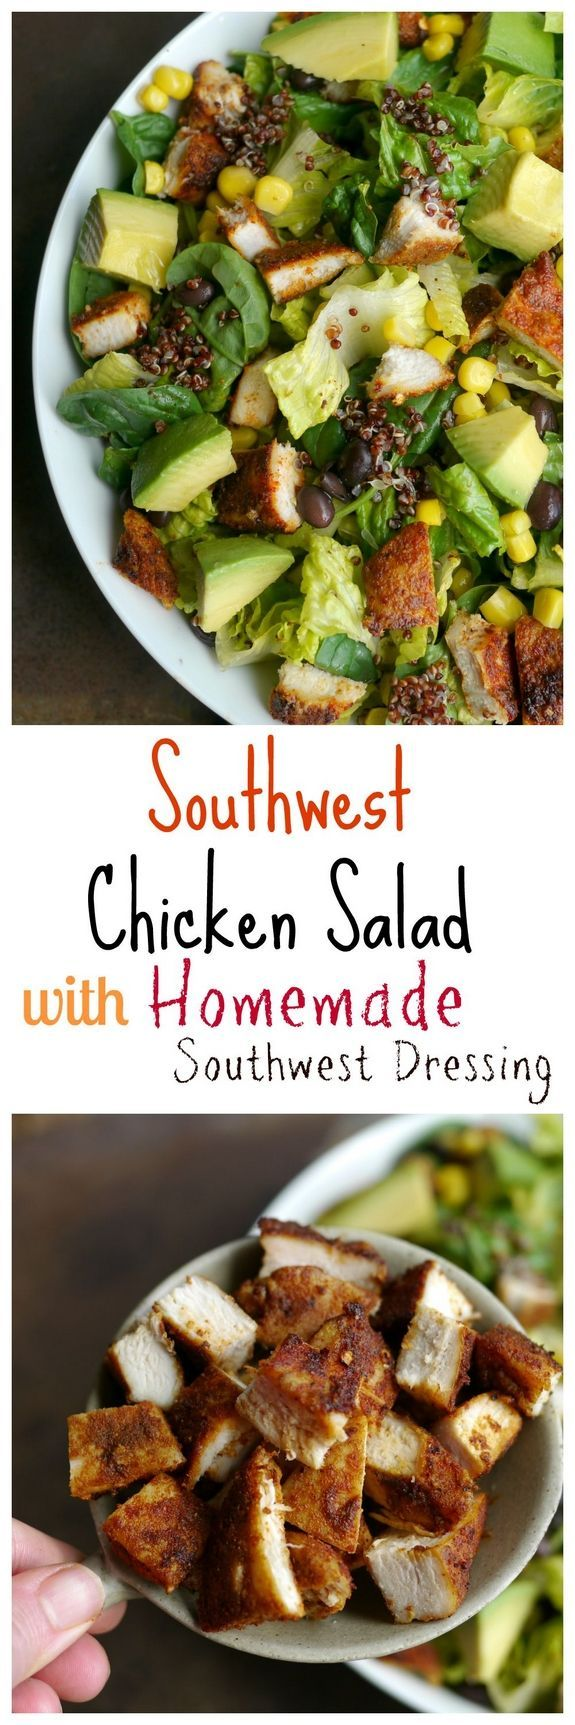 Southwest Chicken Salad with Homemade Southwest Dressing. The perfect dinner or lunch using FosterFramsFresh chicken, so delicious! @FosterFarms AD